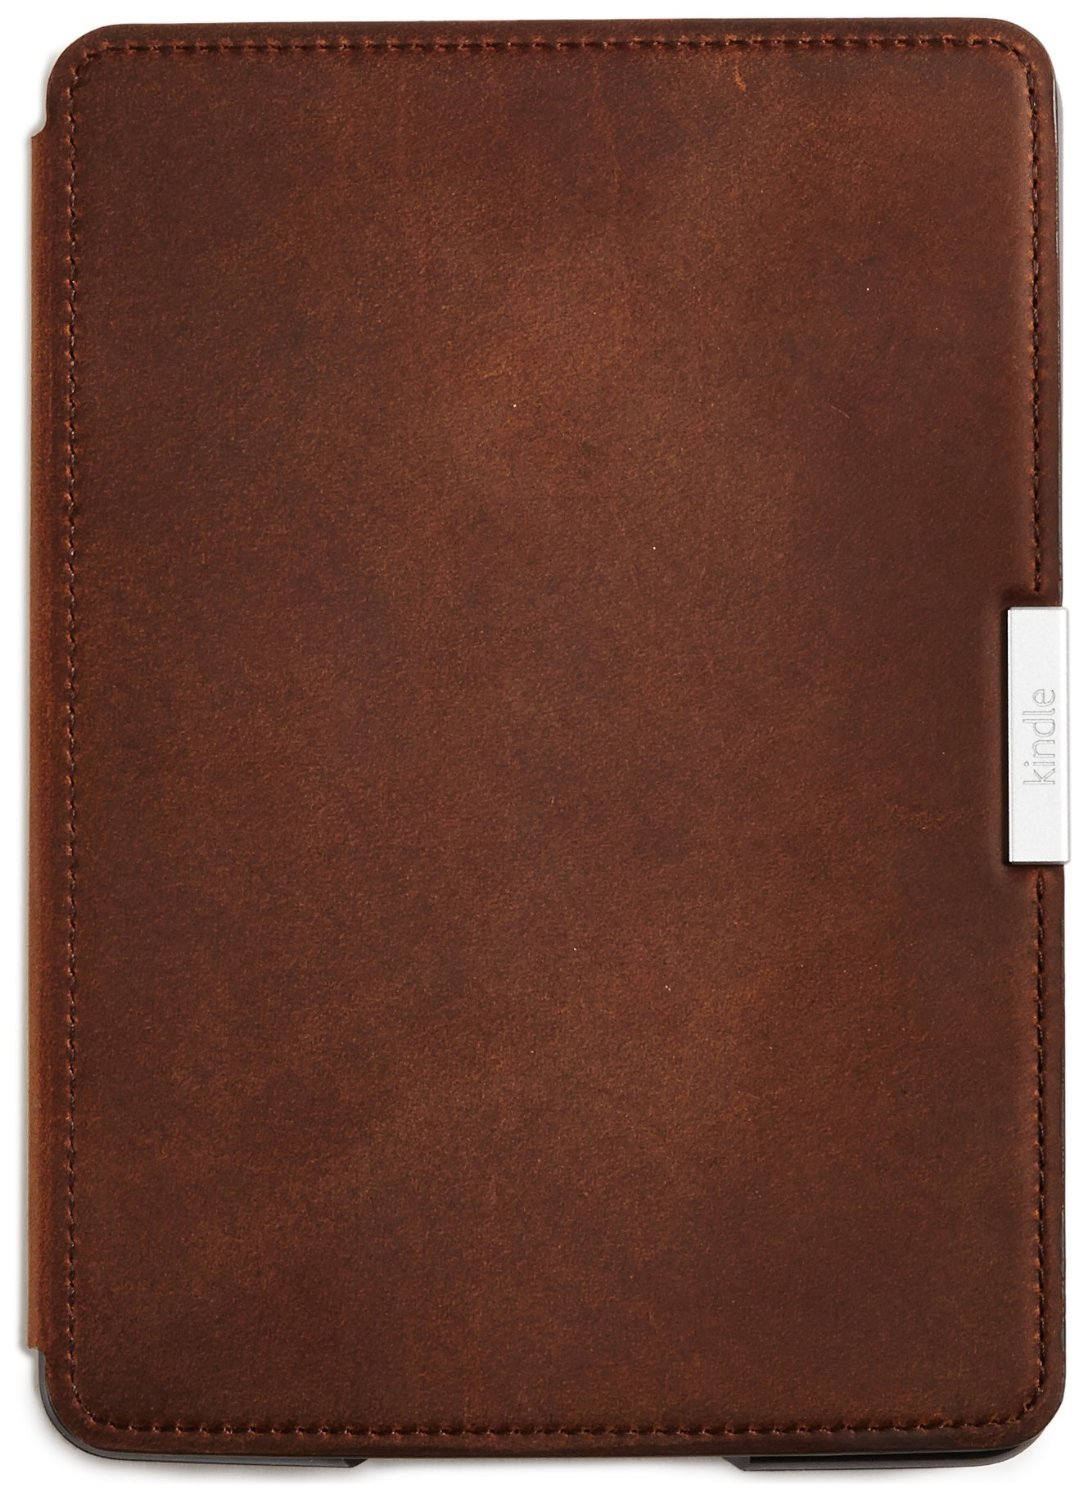 Чехол для Amazon Kindle PaperWhite Limited Edition Premium Leather Cover. Фото N4